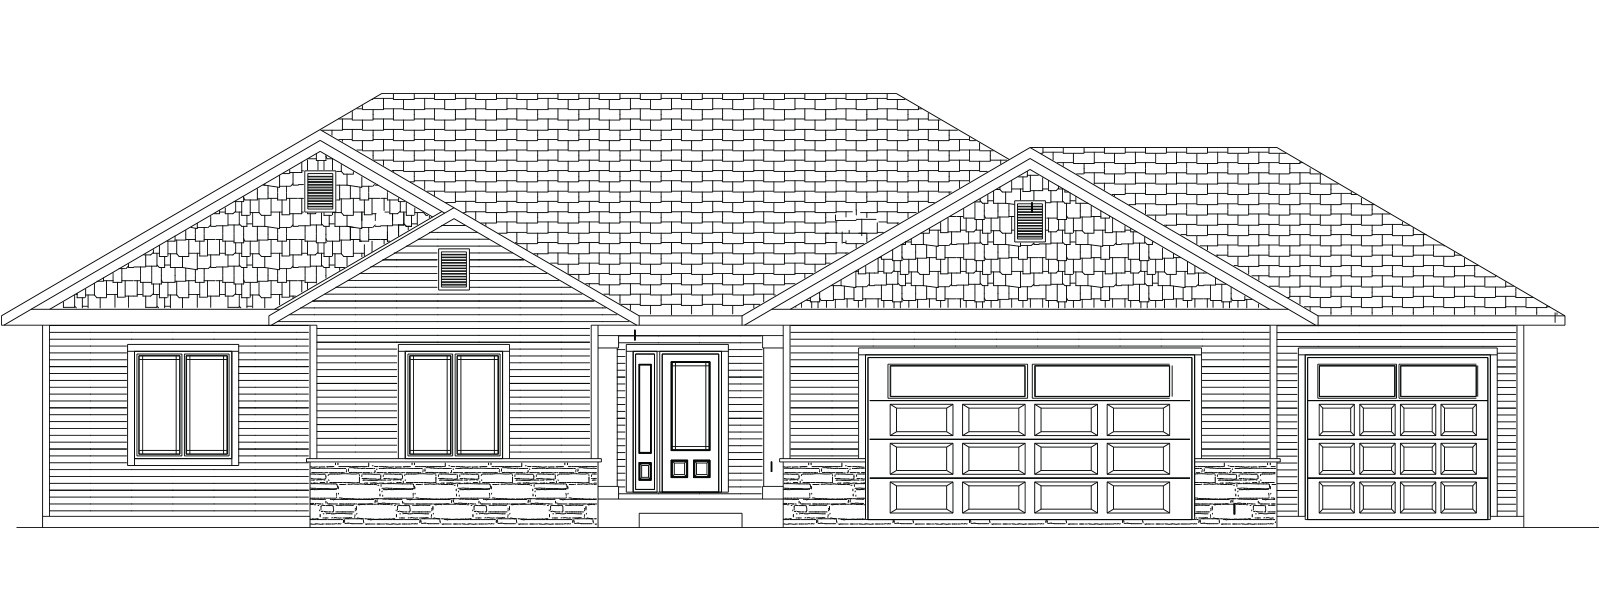 lauren-build-new-home-sheboygan.jpg